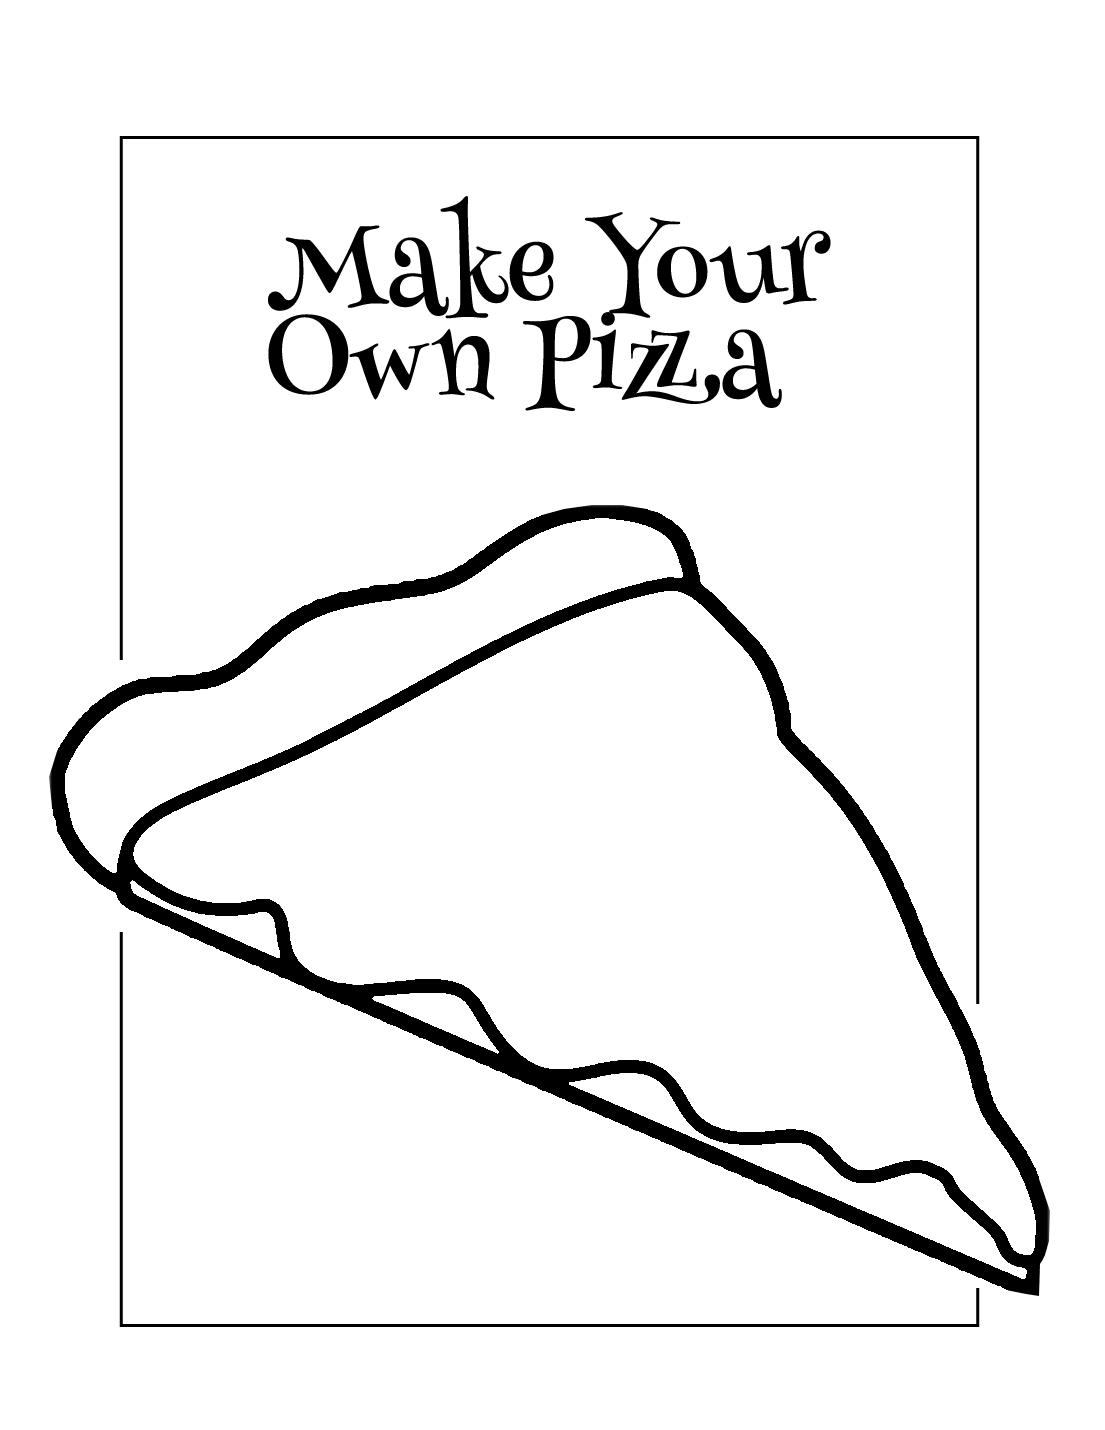 Make Your Own Pizza Coloring Page